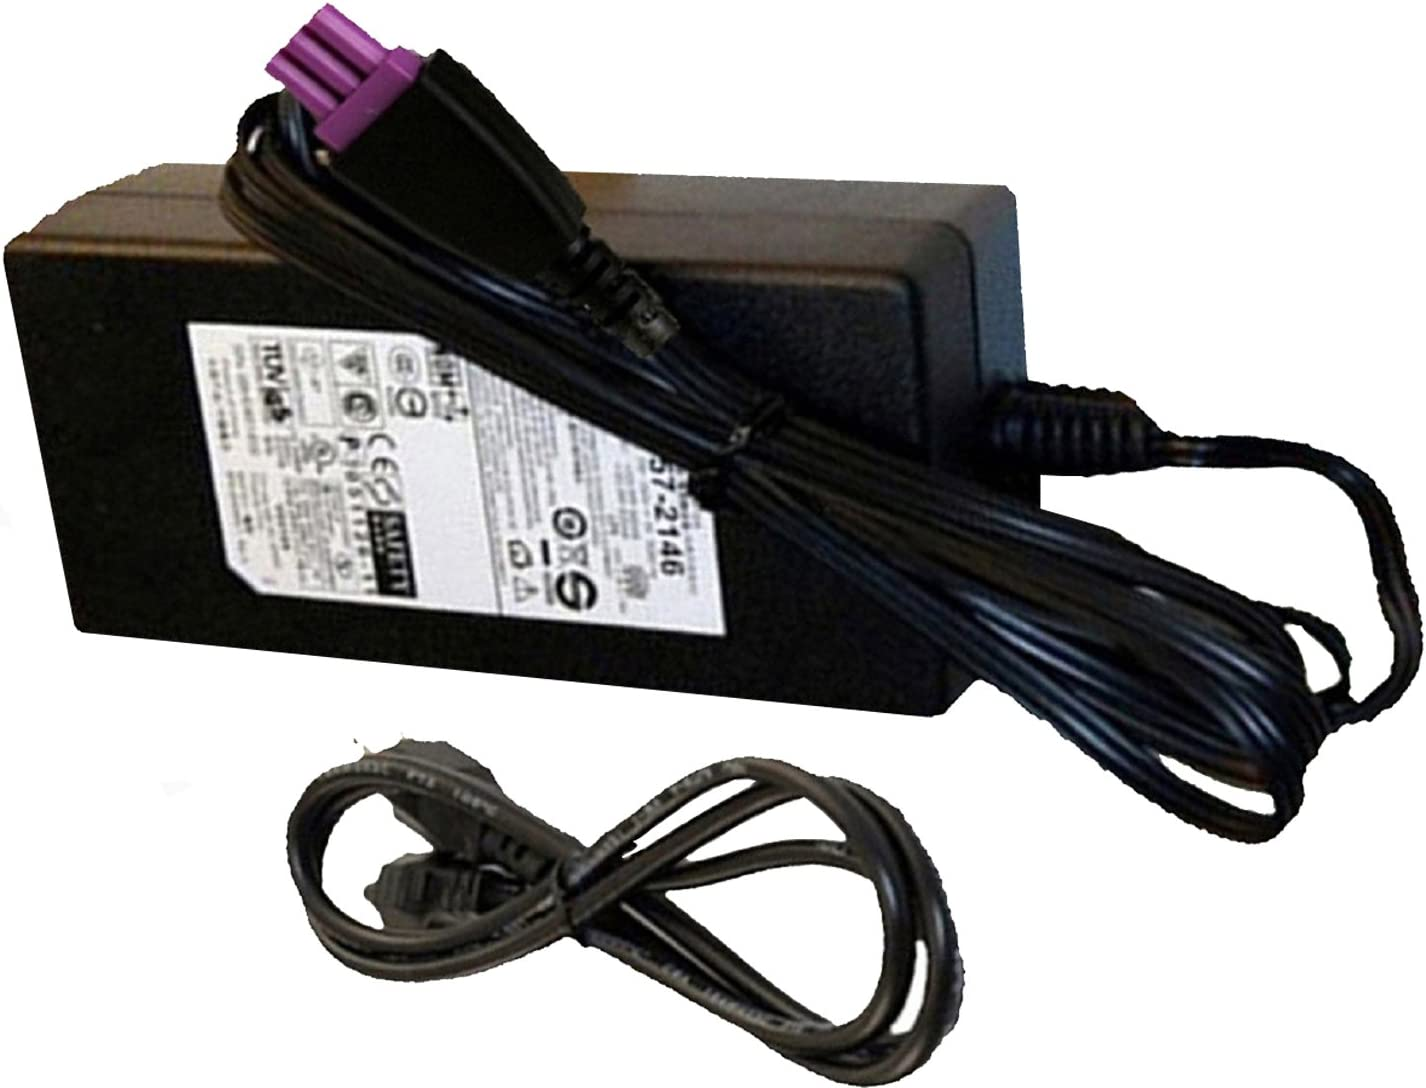 UpBright AC Adapter Replacement for HP 0957-2286 1050 1000 2050 OfficeJet J4000 J4524 J4580 J4624 J4660 J4680 F2418 F4488 k109a J4500 4500 Deskjet 2512 3000 3015A 3050A J610A Photosmart D110 Printer